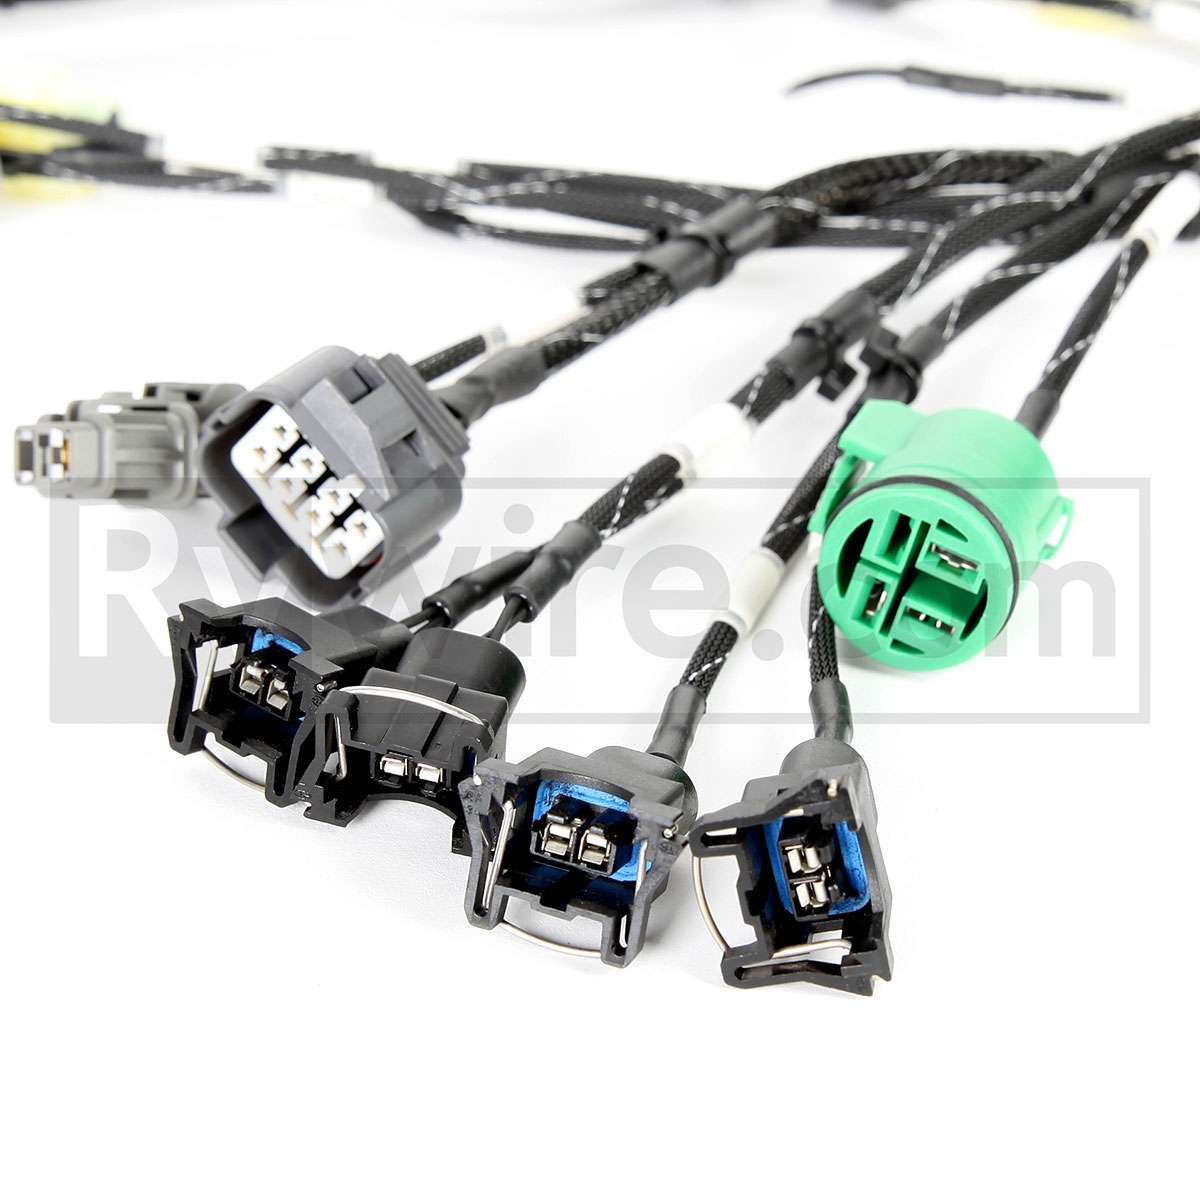 B1 Base 4?1403534211 rywire com budget d & b series tucked engine harness  at edmiracle.co